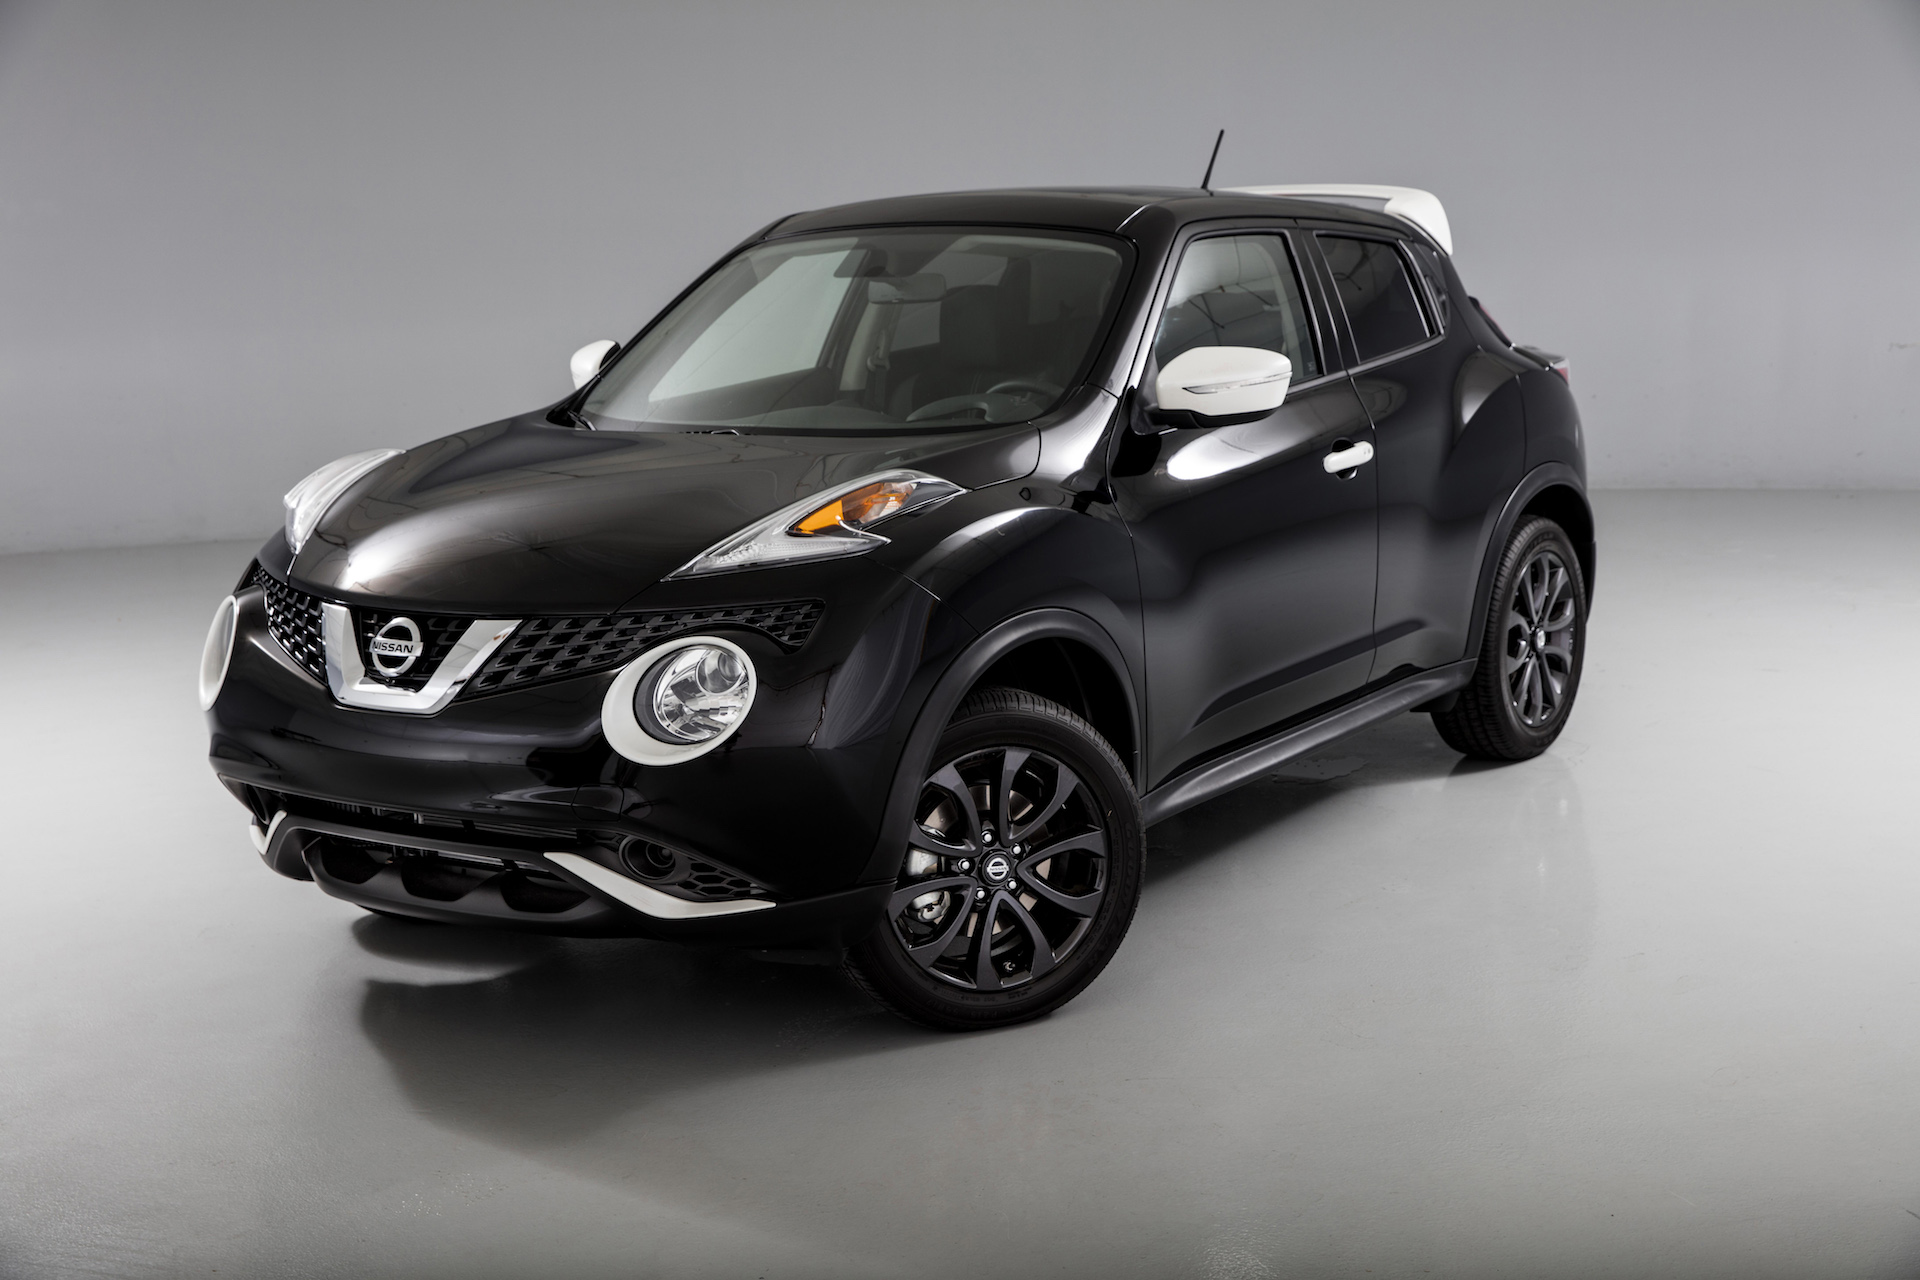 2017 Nissan Juke Review, Ratings, Specs, Prices, and ...